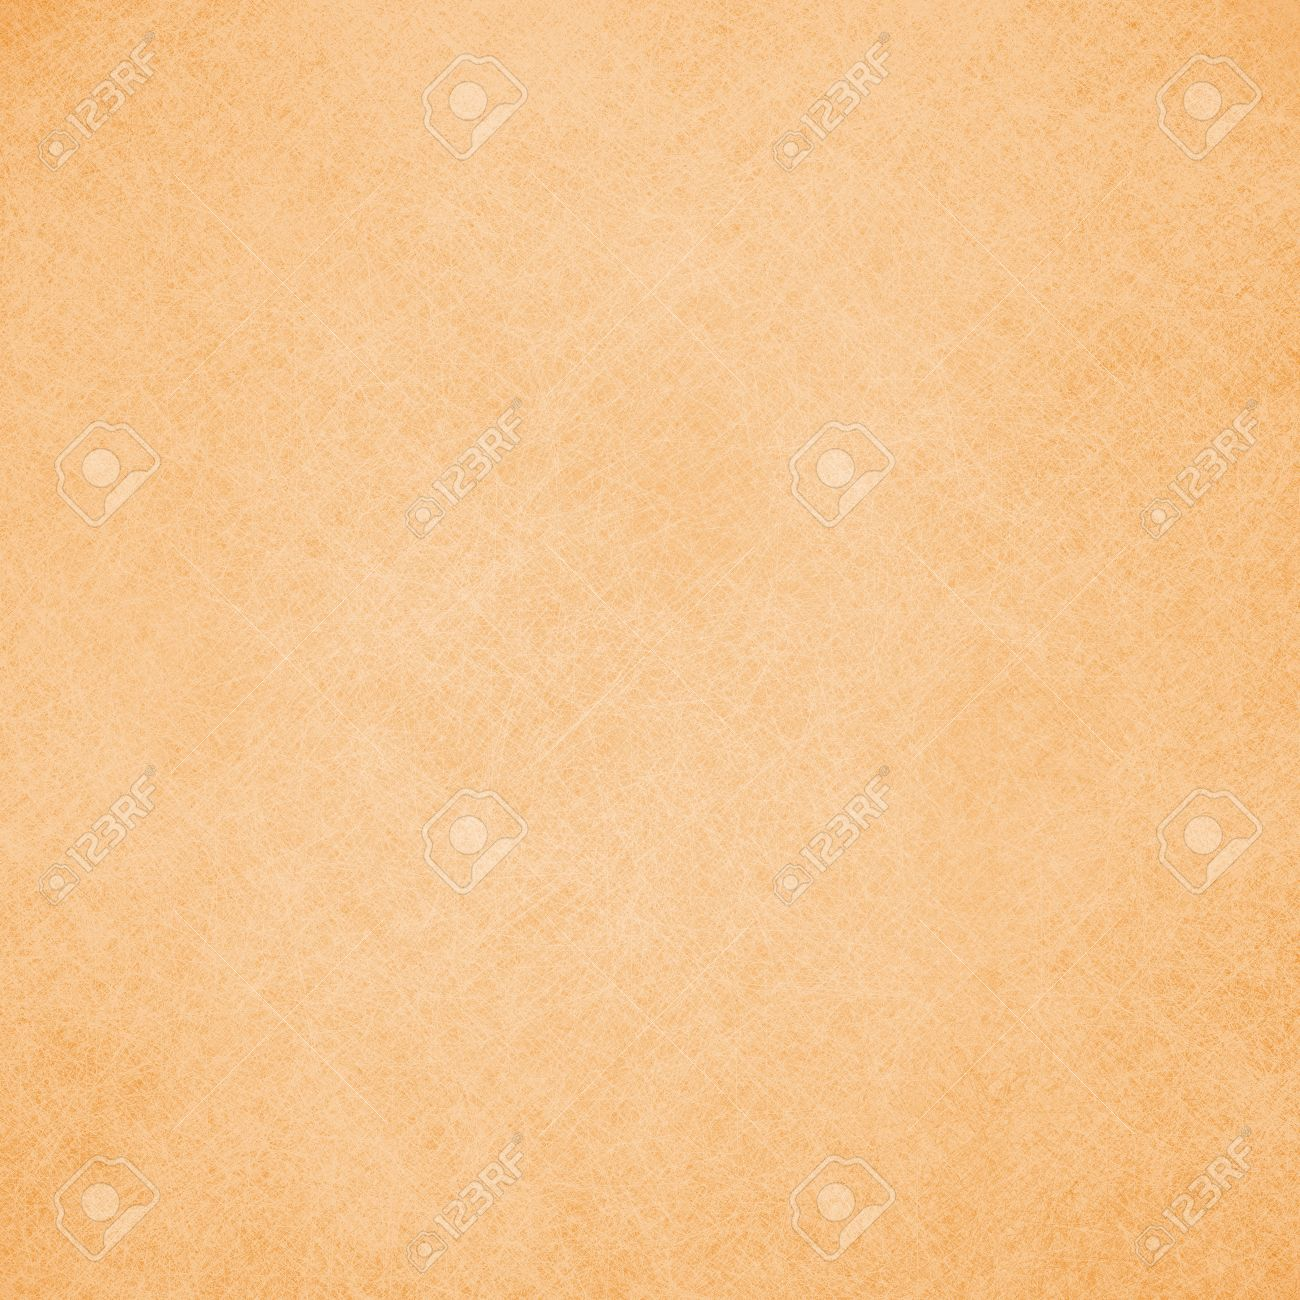 abstract plain orange background peach color soft faded vintage stock photo picture and royalty free image image 25410864 abstract plain orange background peach color soft faded vintage